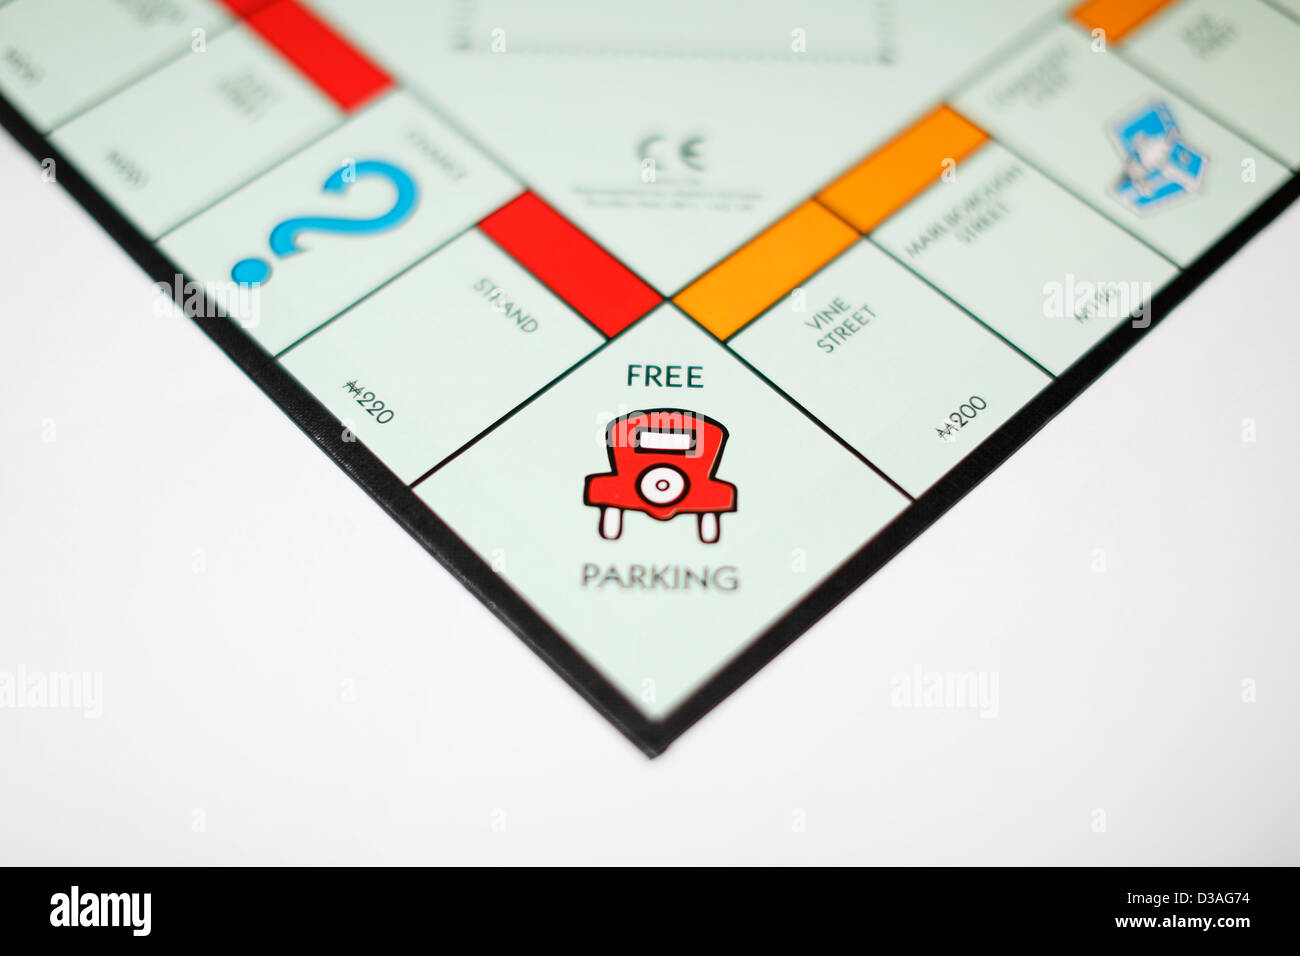 hight resolution of free parking on a monopoly board game